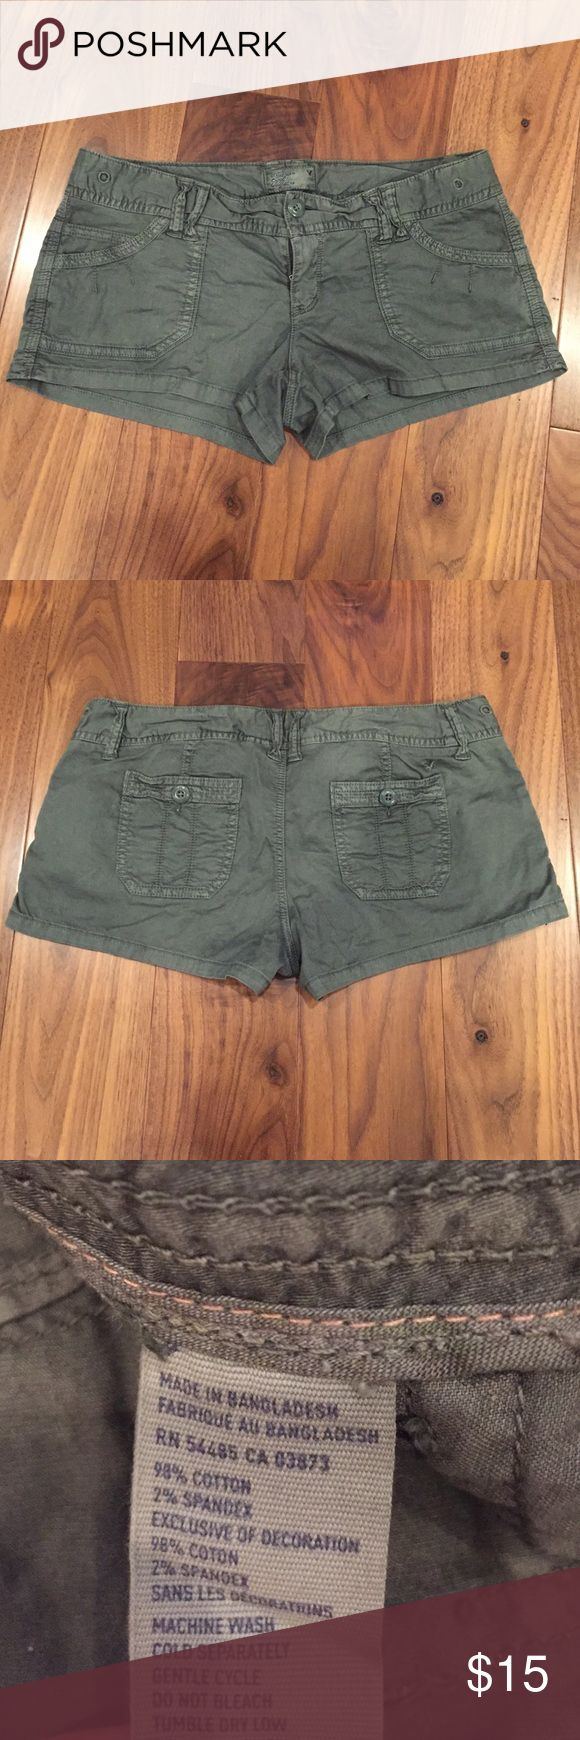 Shorts Worn maybe 2 times, in great condition. Low rise shortie shorts. American Eagle Outfitters Shorts